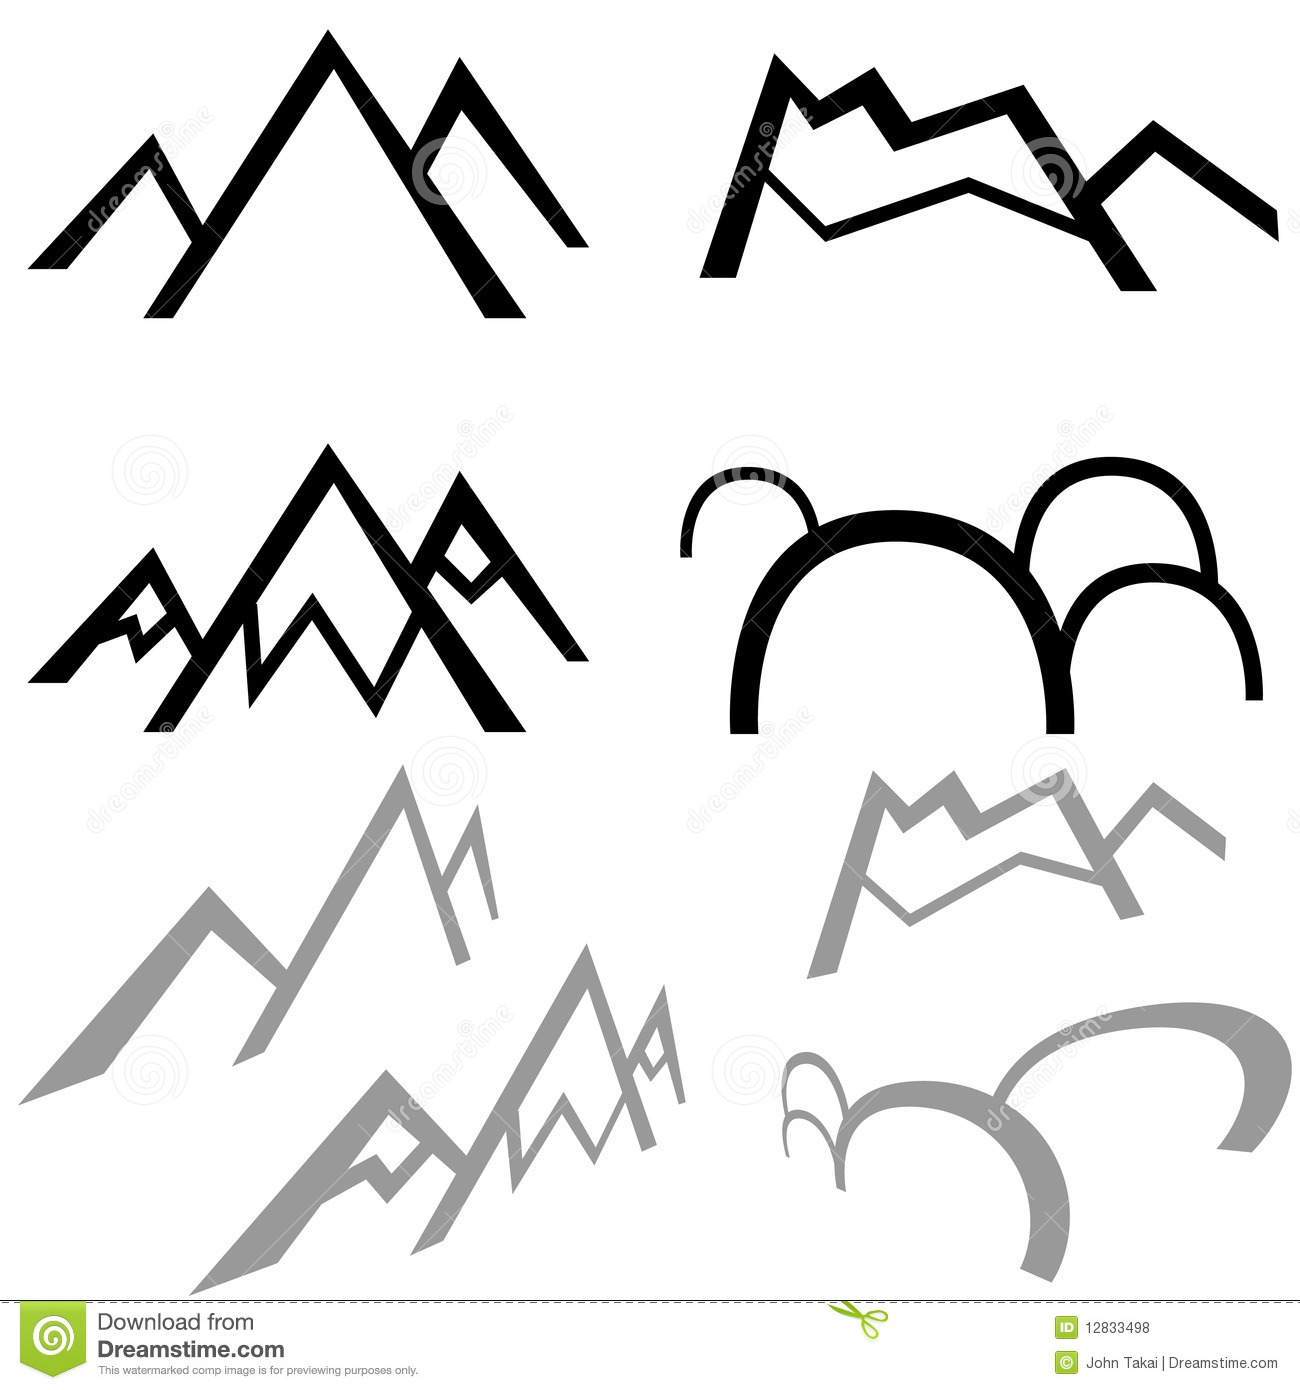 40+ Free Mountain Clipart | ClipartLook banner free download